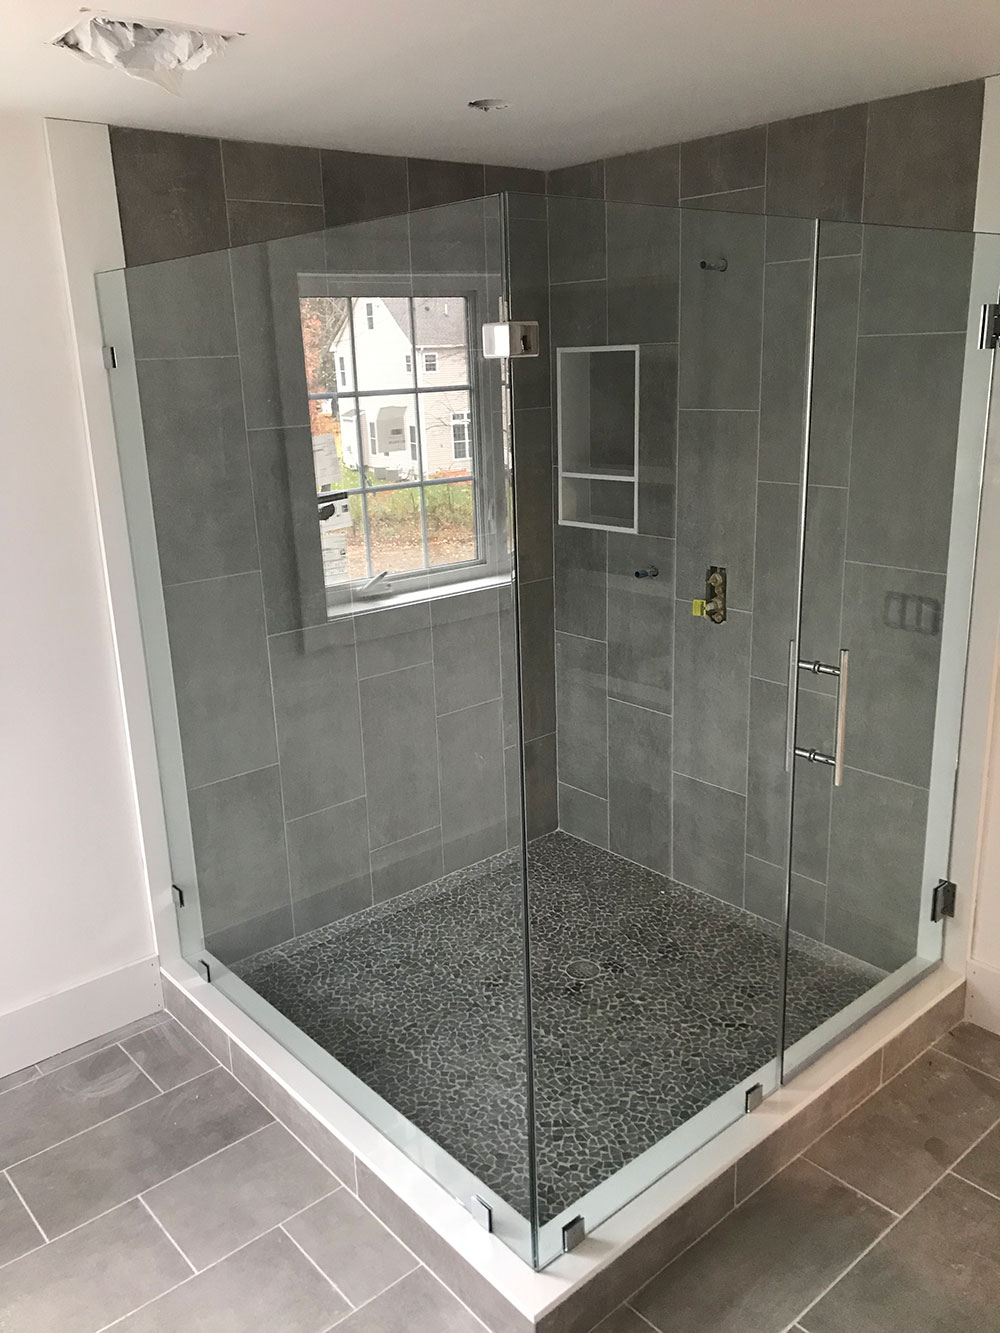 R&M Glass Shower Glass Boston Image 15